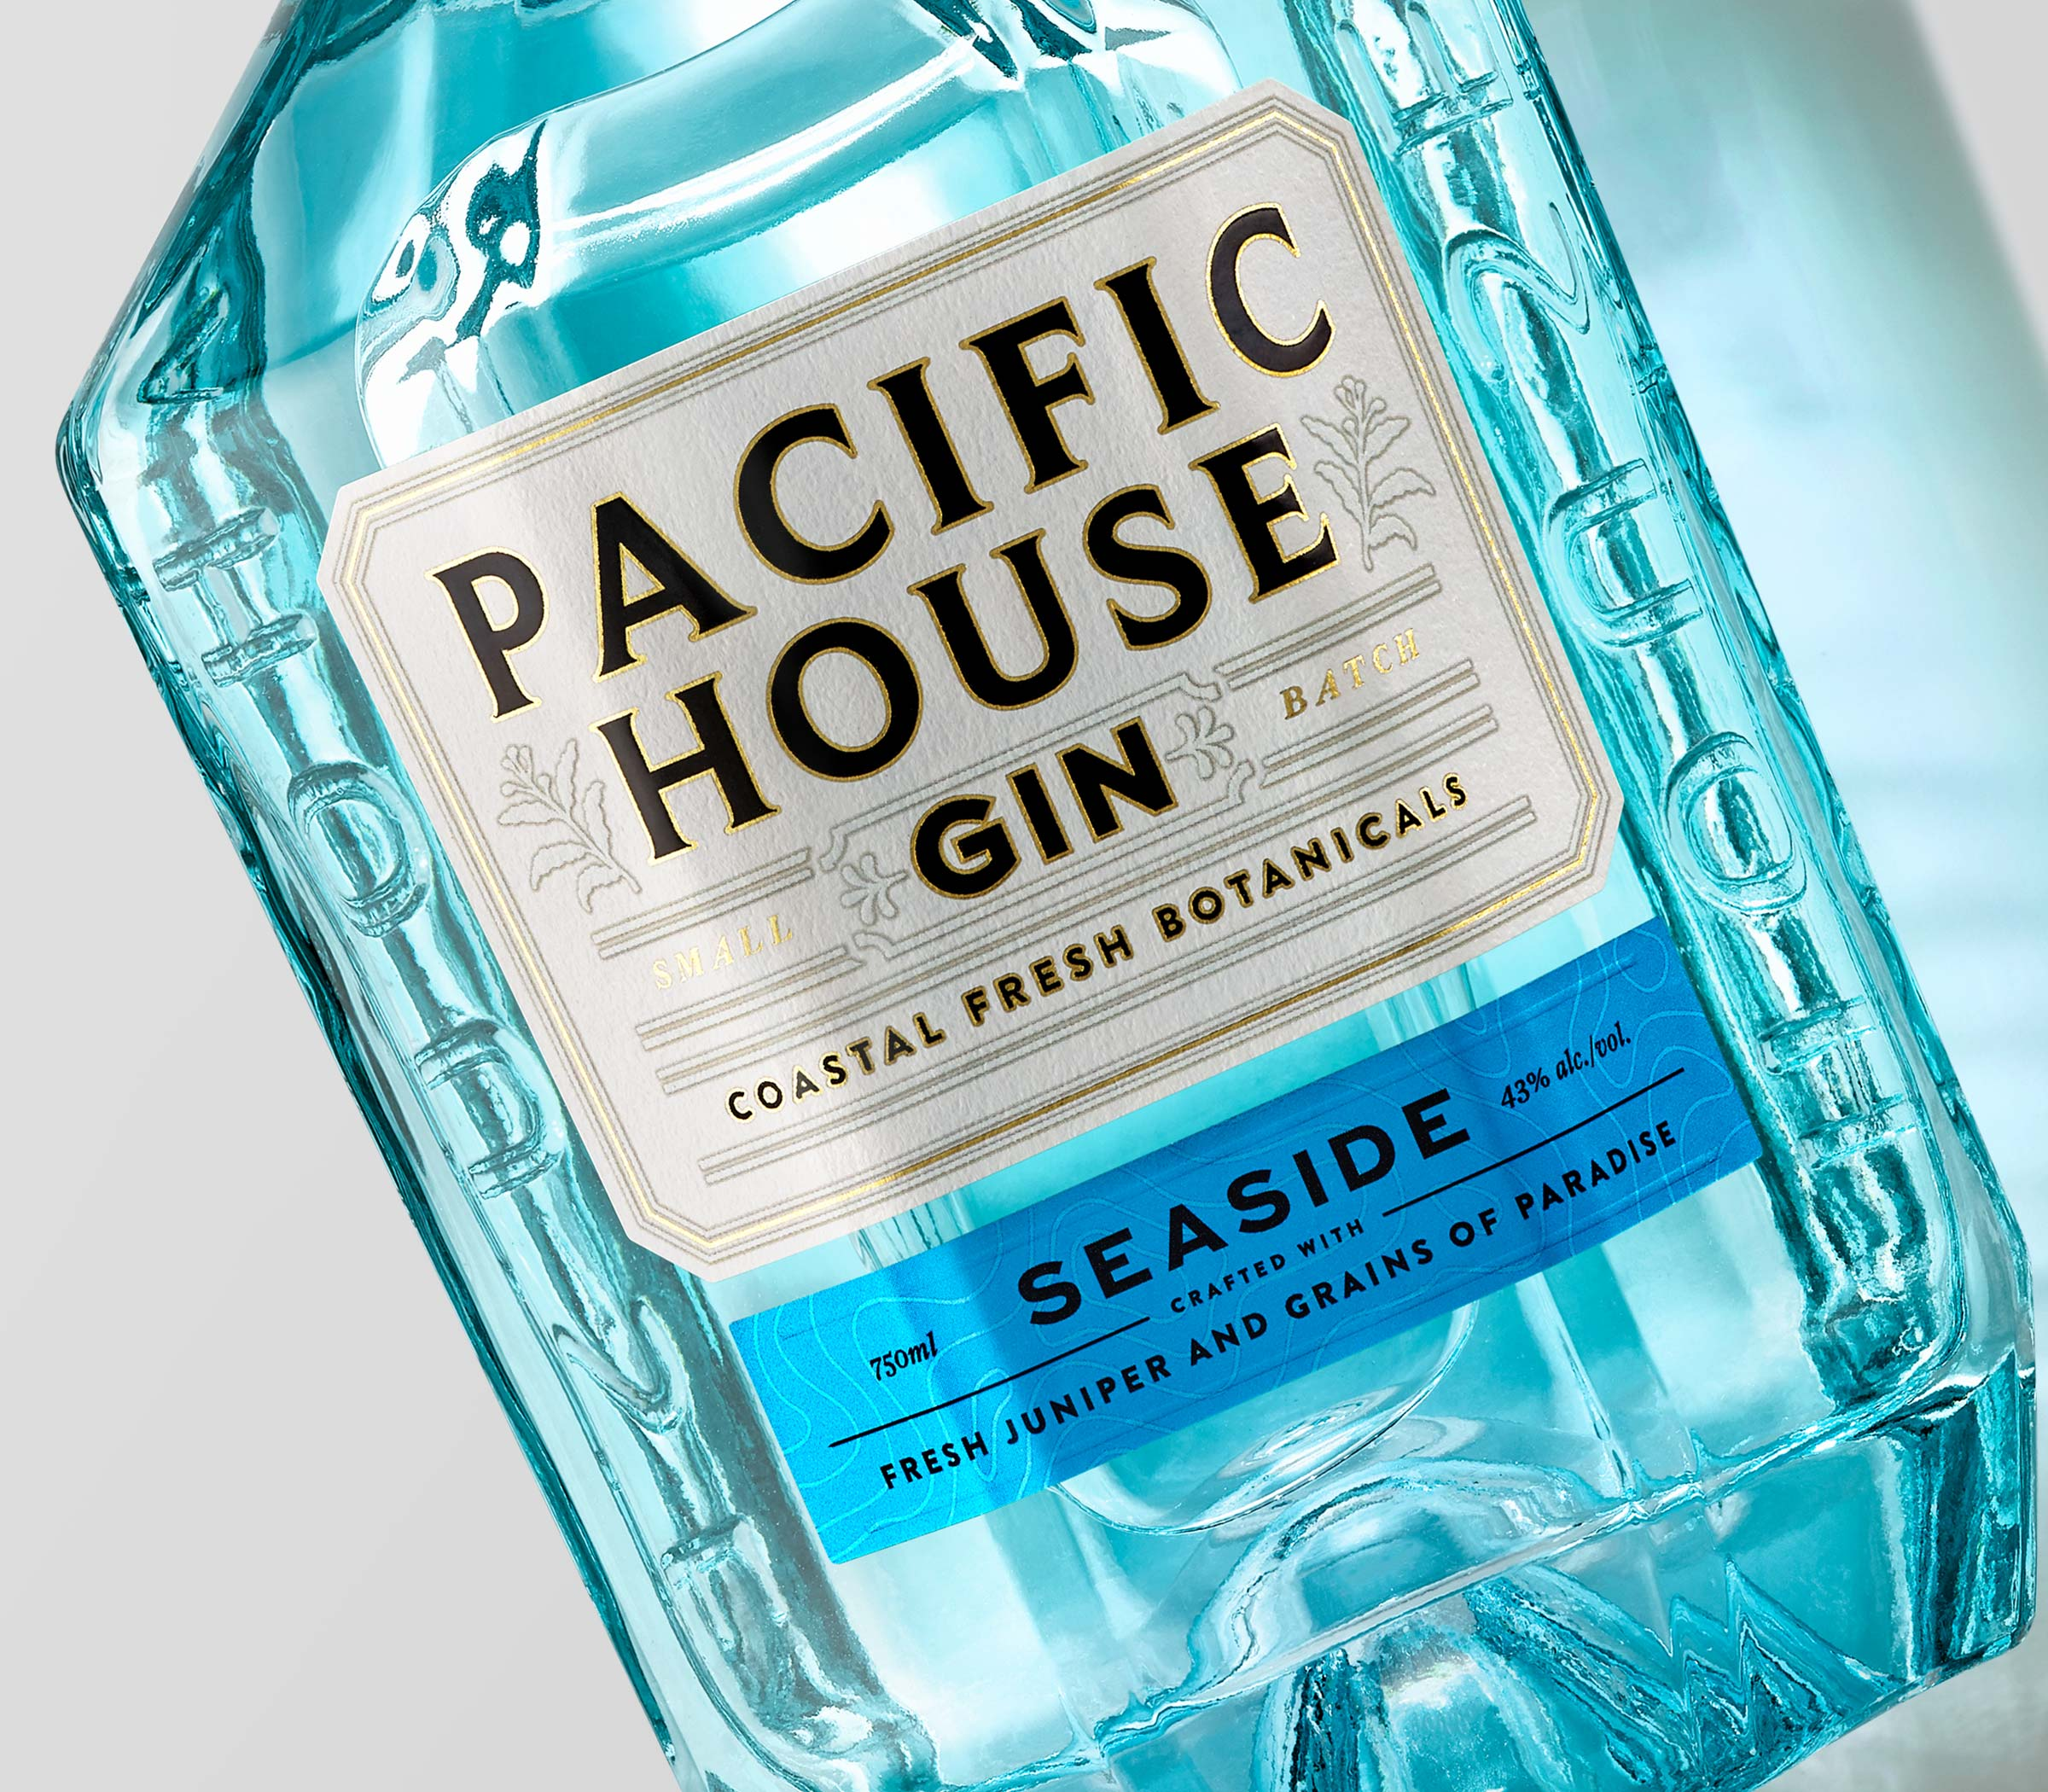 Pacific House Taps Chad Michael Studio to Design Their Sea-Inspired Gin